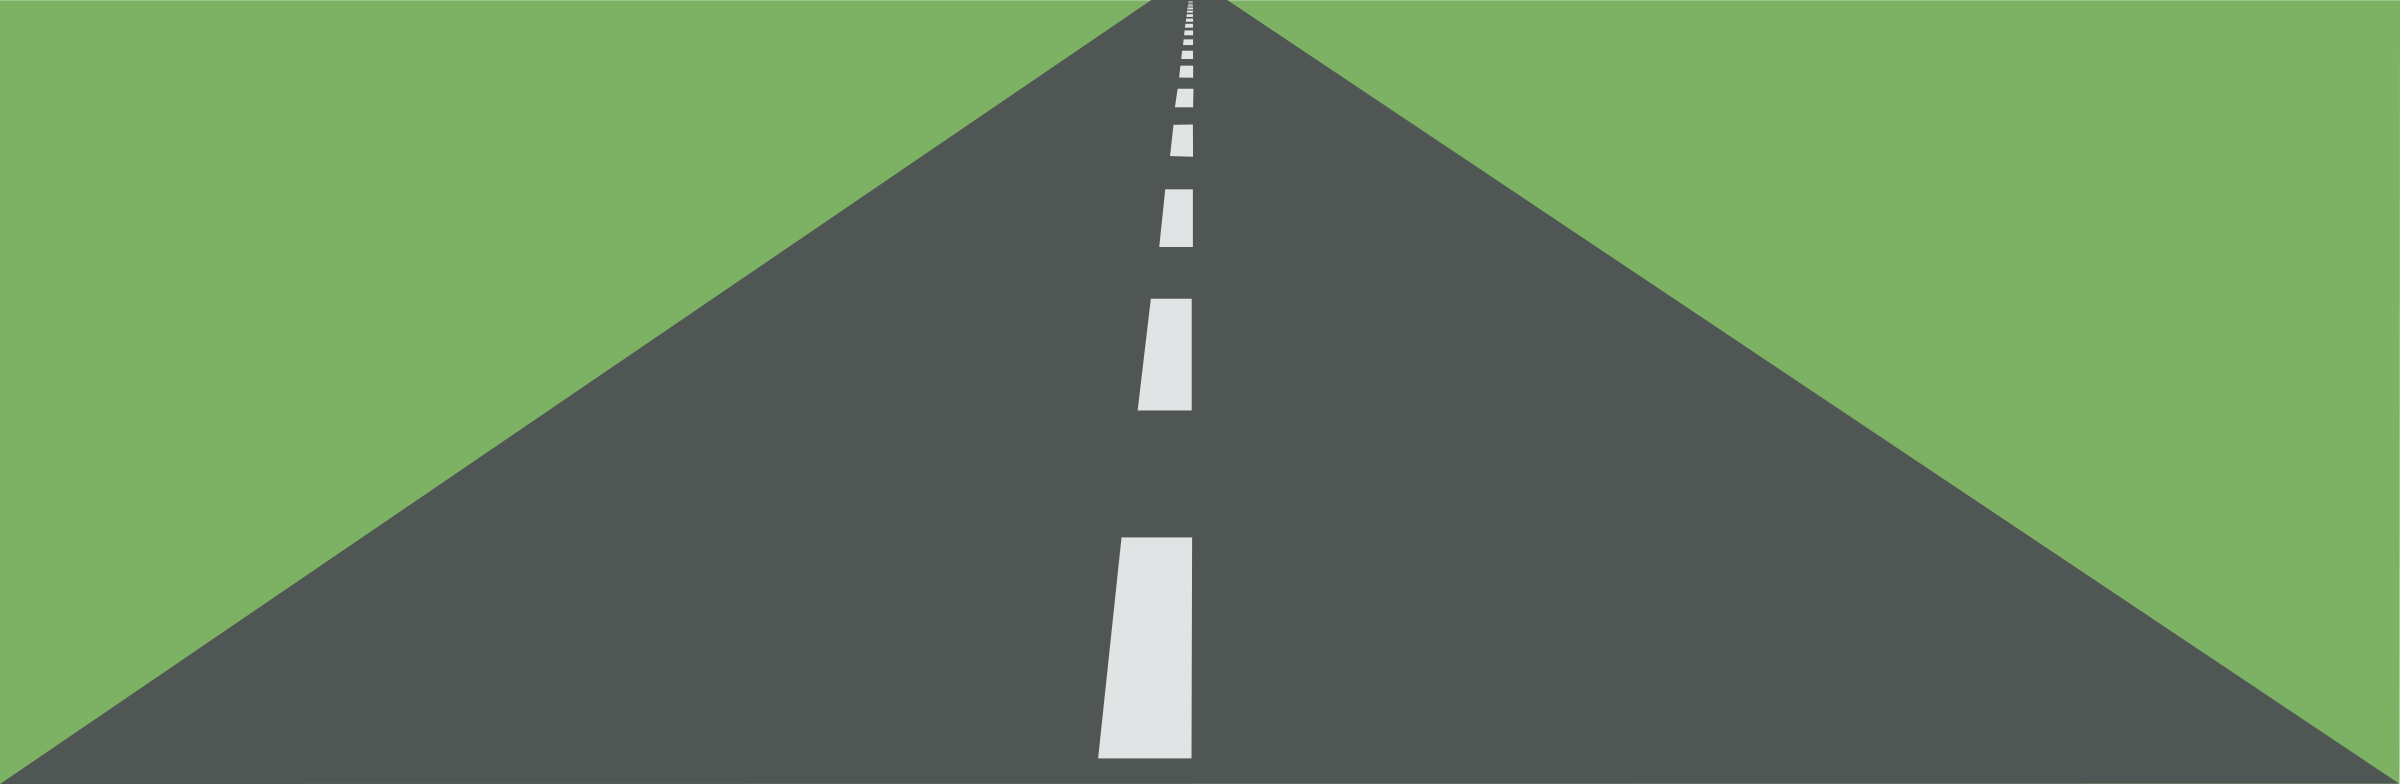 Clipart road with landscape